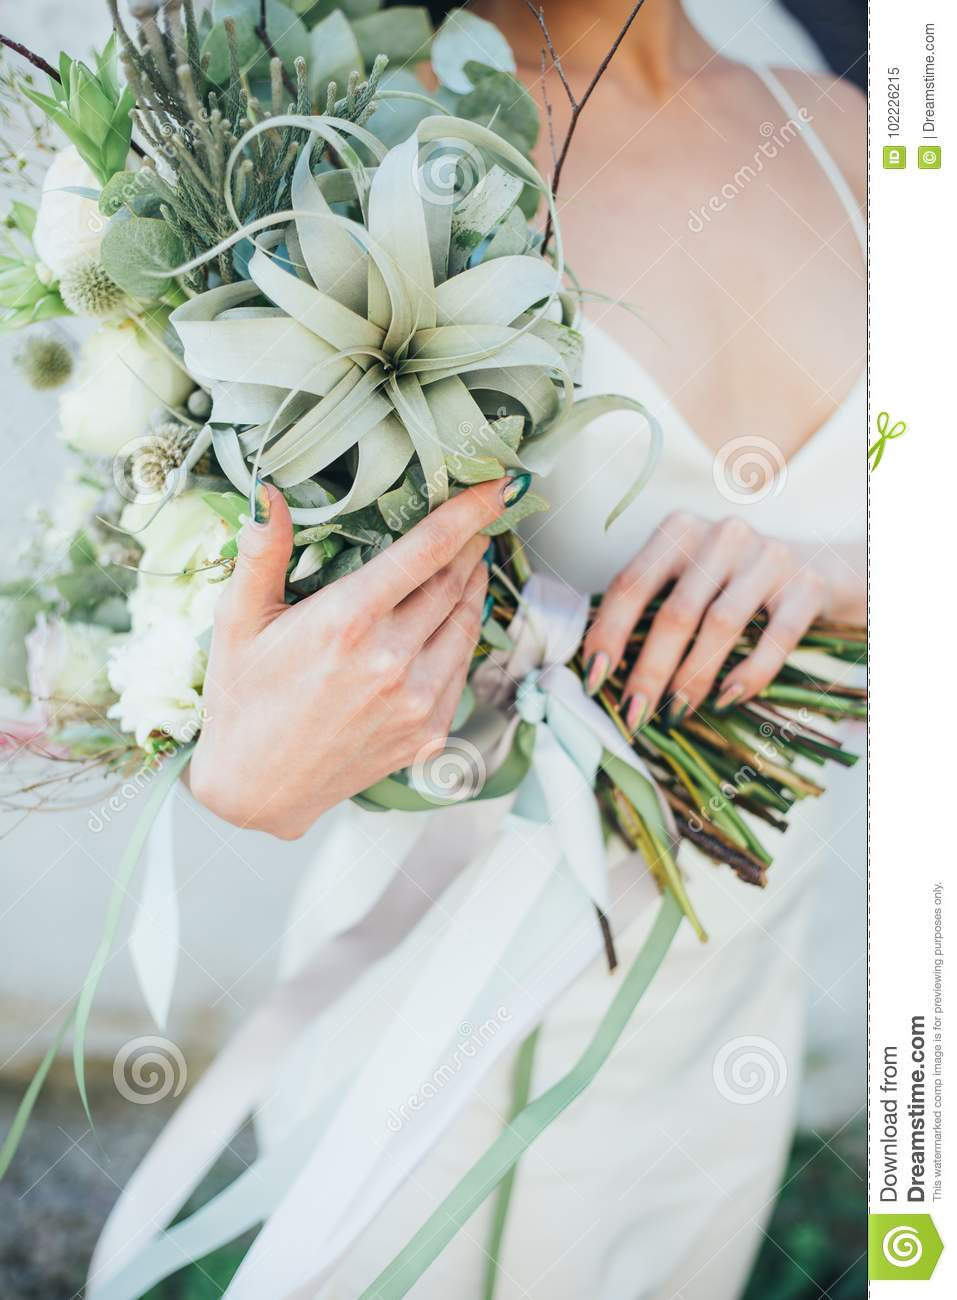 Bouquet with fresh flowers in hand stock image image of birthday bouquet with fresh flowers in hand izmirmasajfo Choice Image